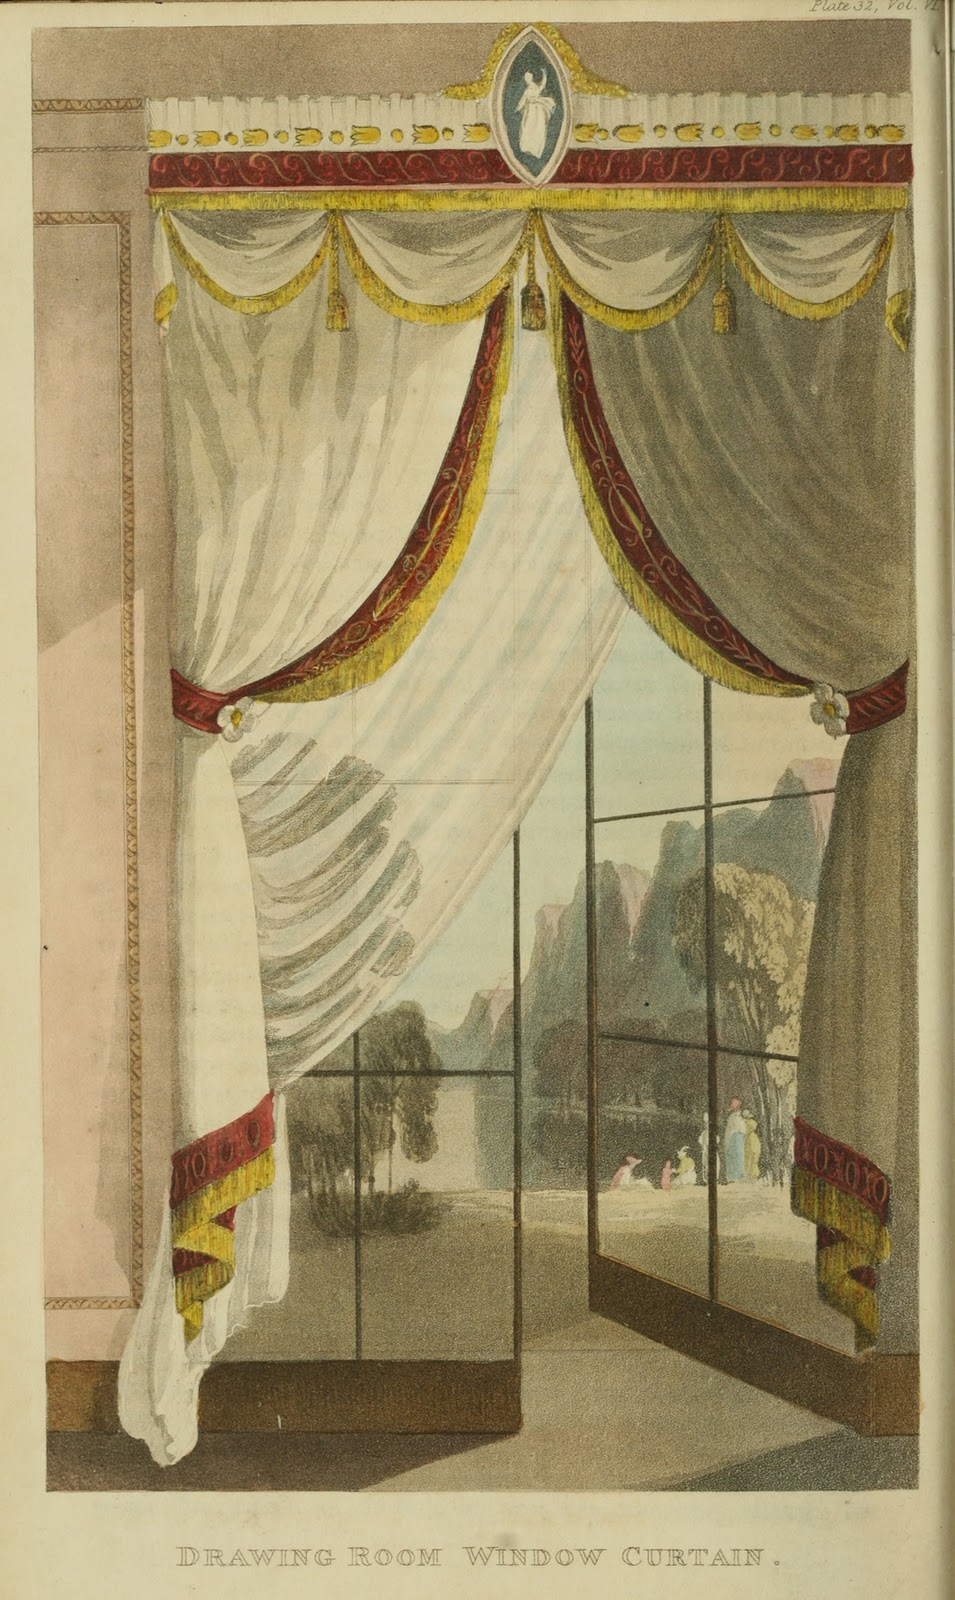 Drawing room curtains. Plate 32. 1818.